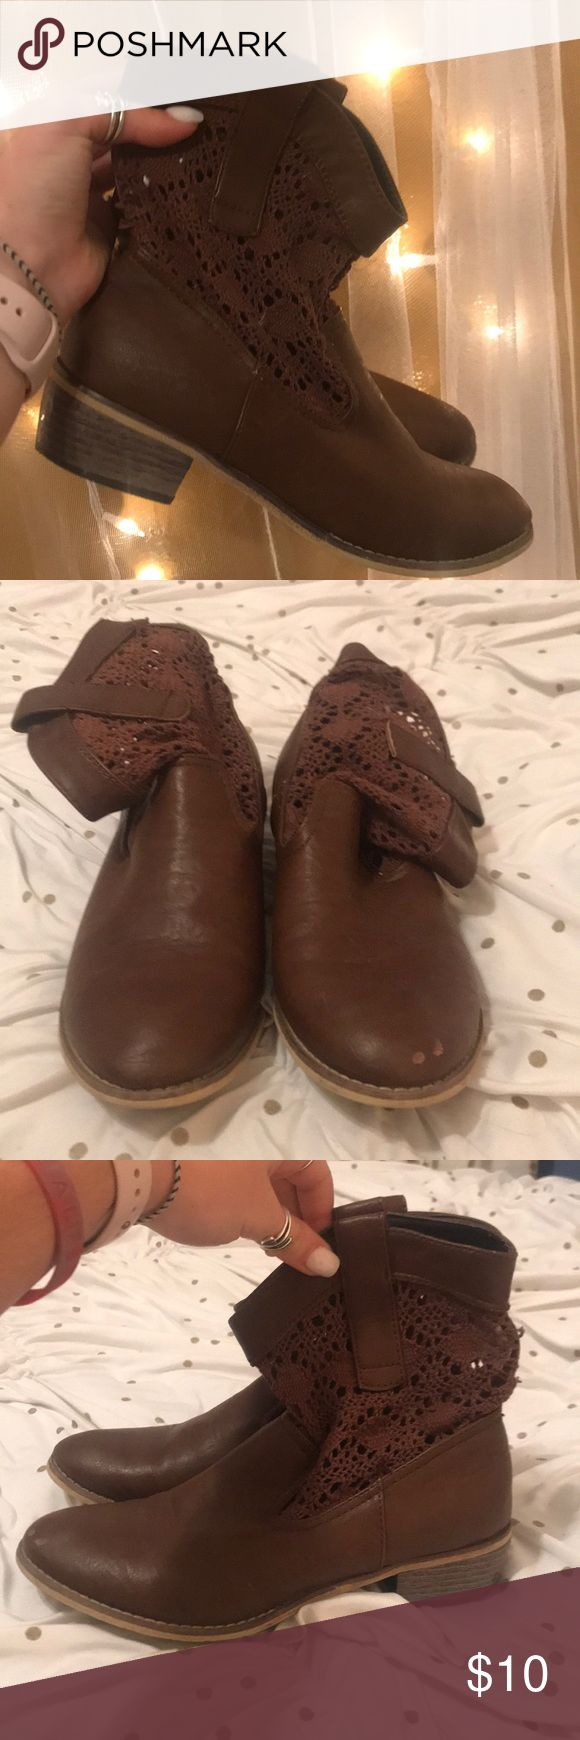 Brown mini boots Only a little scuff on right toe Aeropostale Shoes Ankle Boots & Booties